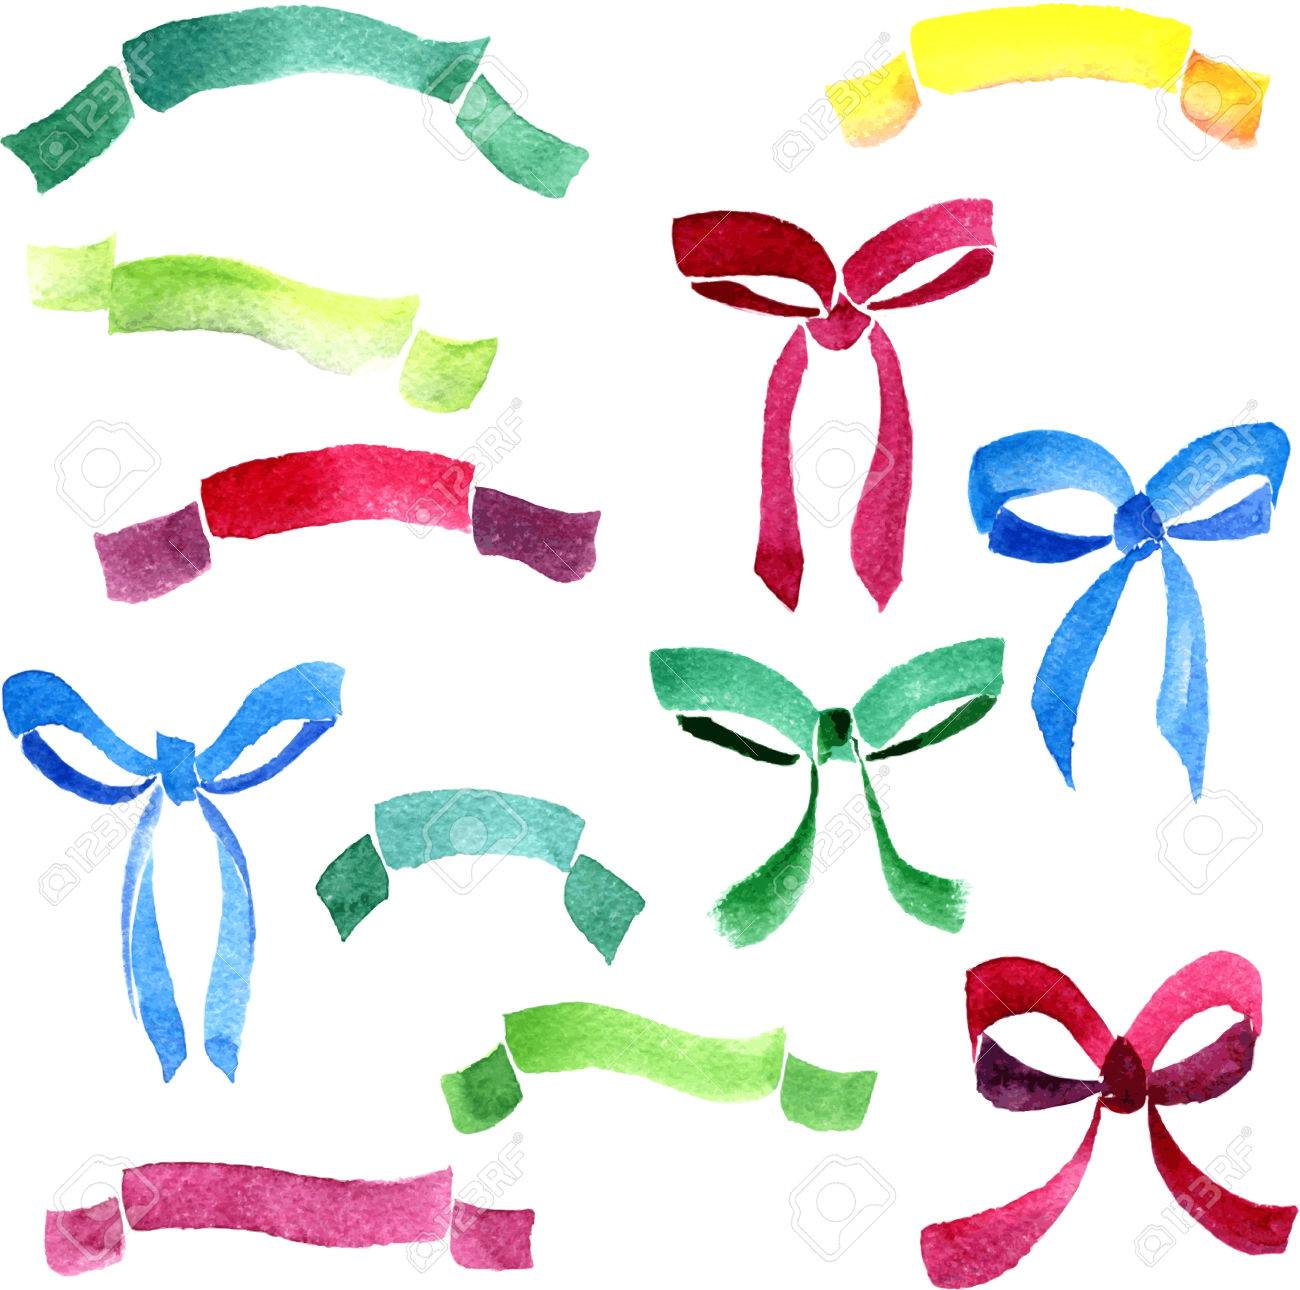 1300x1290 Set Of Watercolor Drawing Many Coloured Ribbons And Bows Drawing